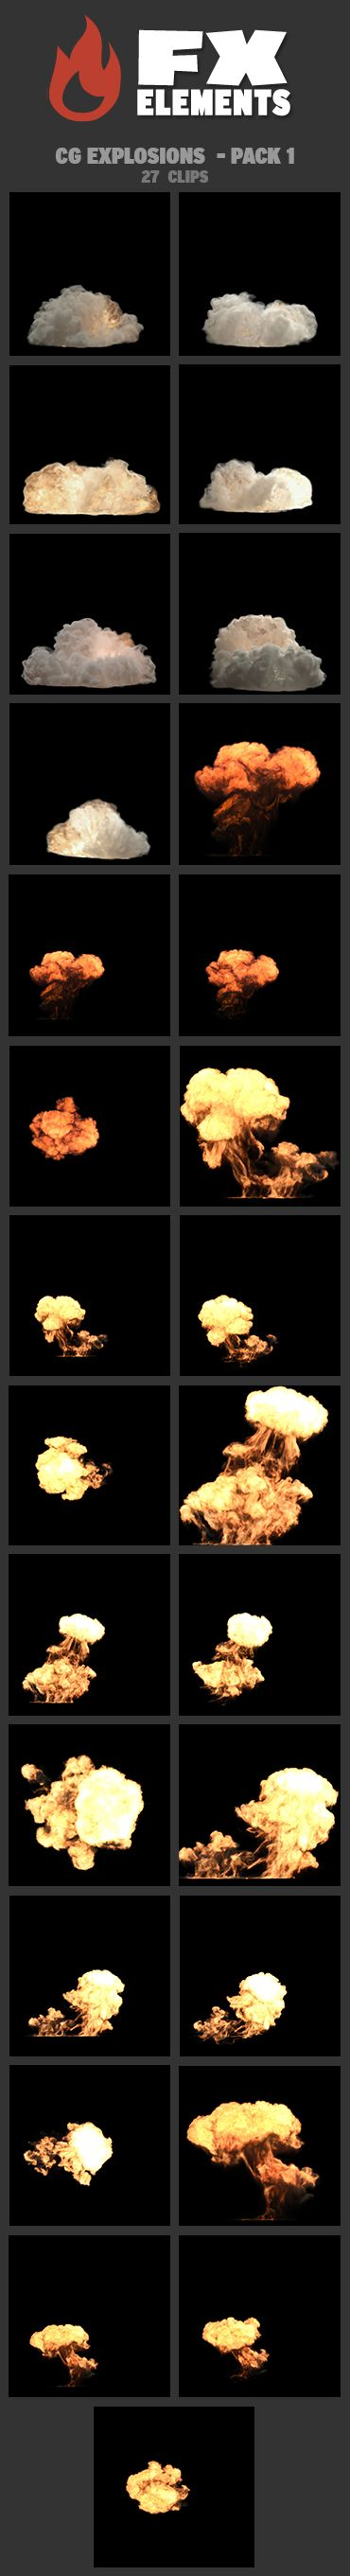 CG Explosions - Pack 1 includes 7 CG Dynamite clips: a variety of explosions with pyro flash and white smoke. It also includes 20 CG Gas Bomb clips: 5 gasoline explosions with black smoke shown from 4 different angles each: close-up, wide shot, high 45 ° angle and aerial view. • All clips include an Alpha channel • All clips include a Depth matte • 22 clips horizontal 2K resolution (2048 × 1556) • 5 clips vertical 2K resolution (1556 x 2048) • ProRes 4444 Quicktime files